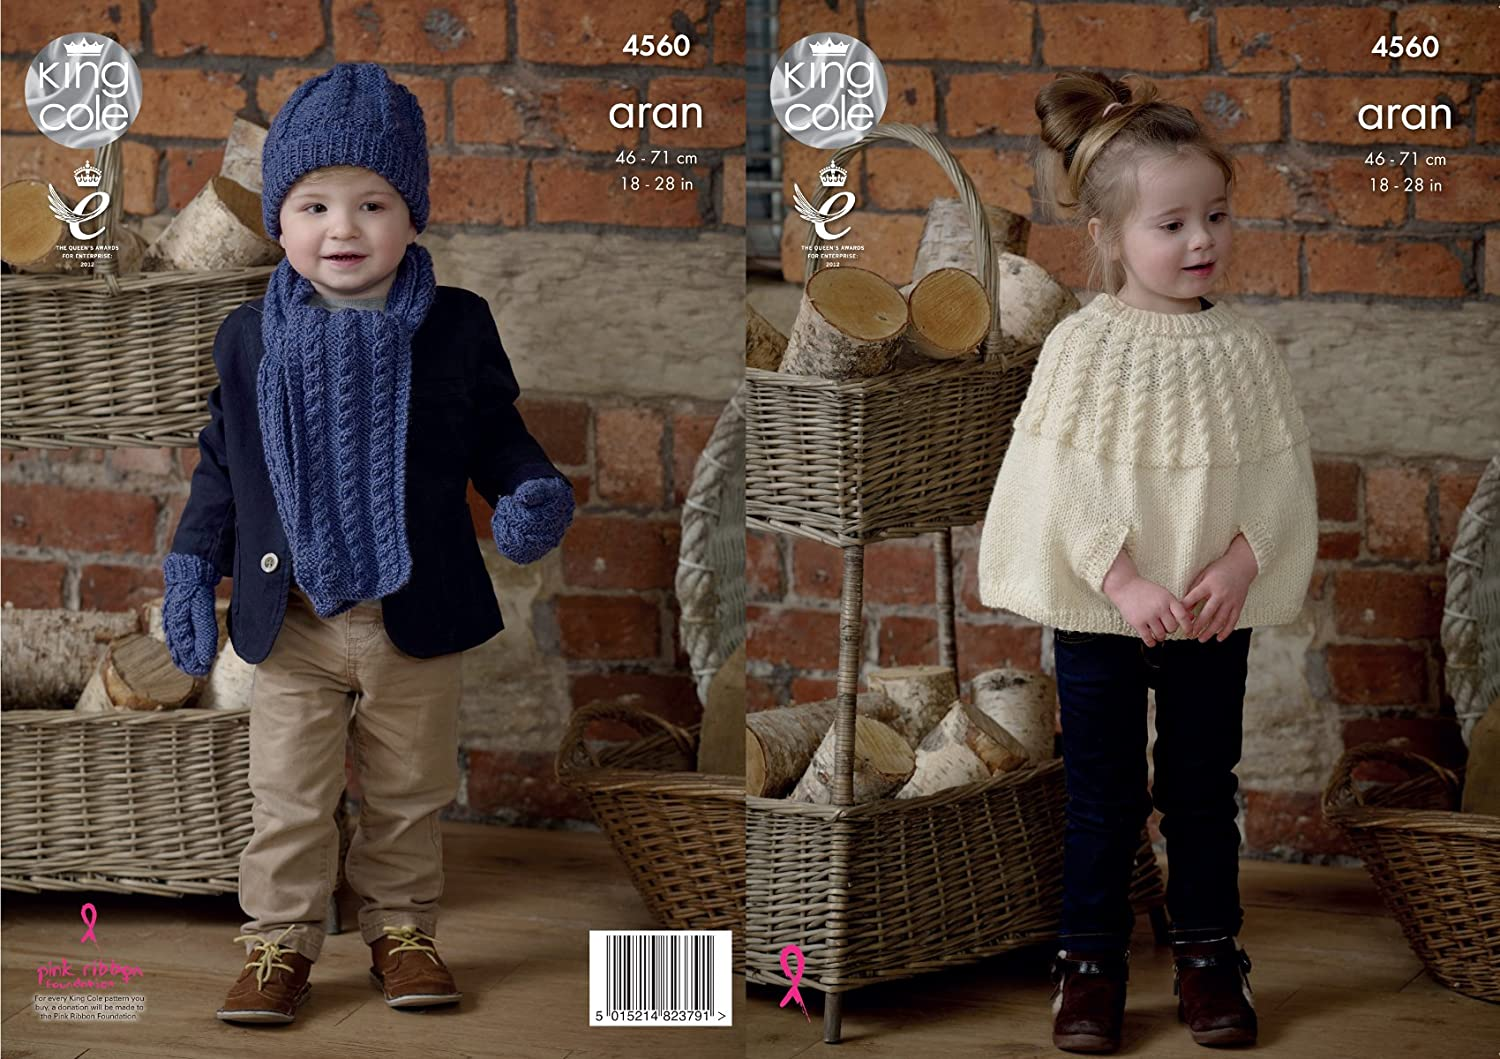 10b00026d4d King Cole 4560 Knitting Pattern Childrens Cape Scarf Hat Mittens in Fashion  Aran  Amazon.co.uk  Kitchen   Home